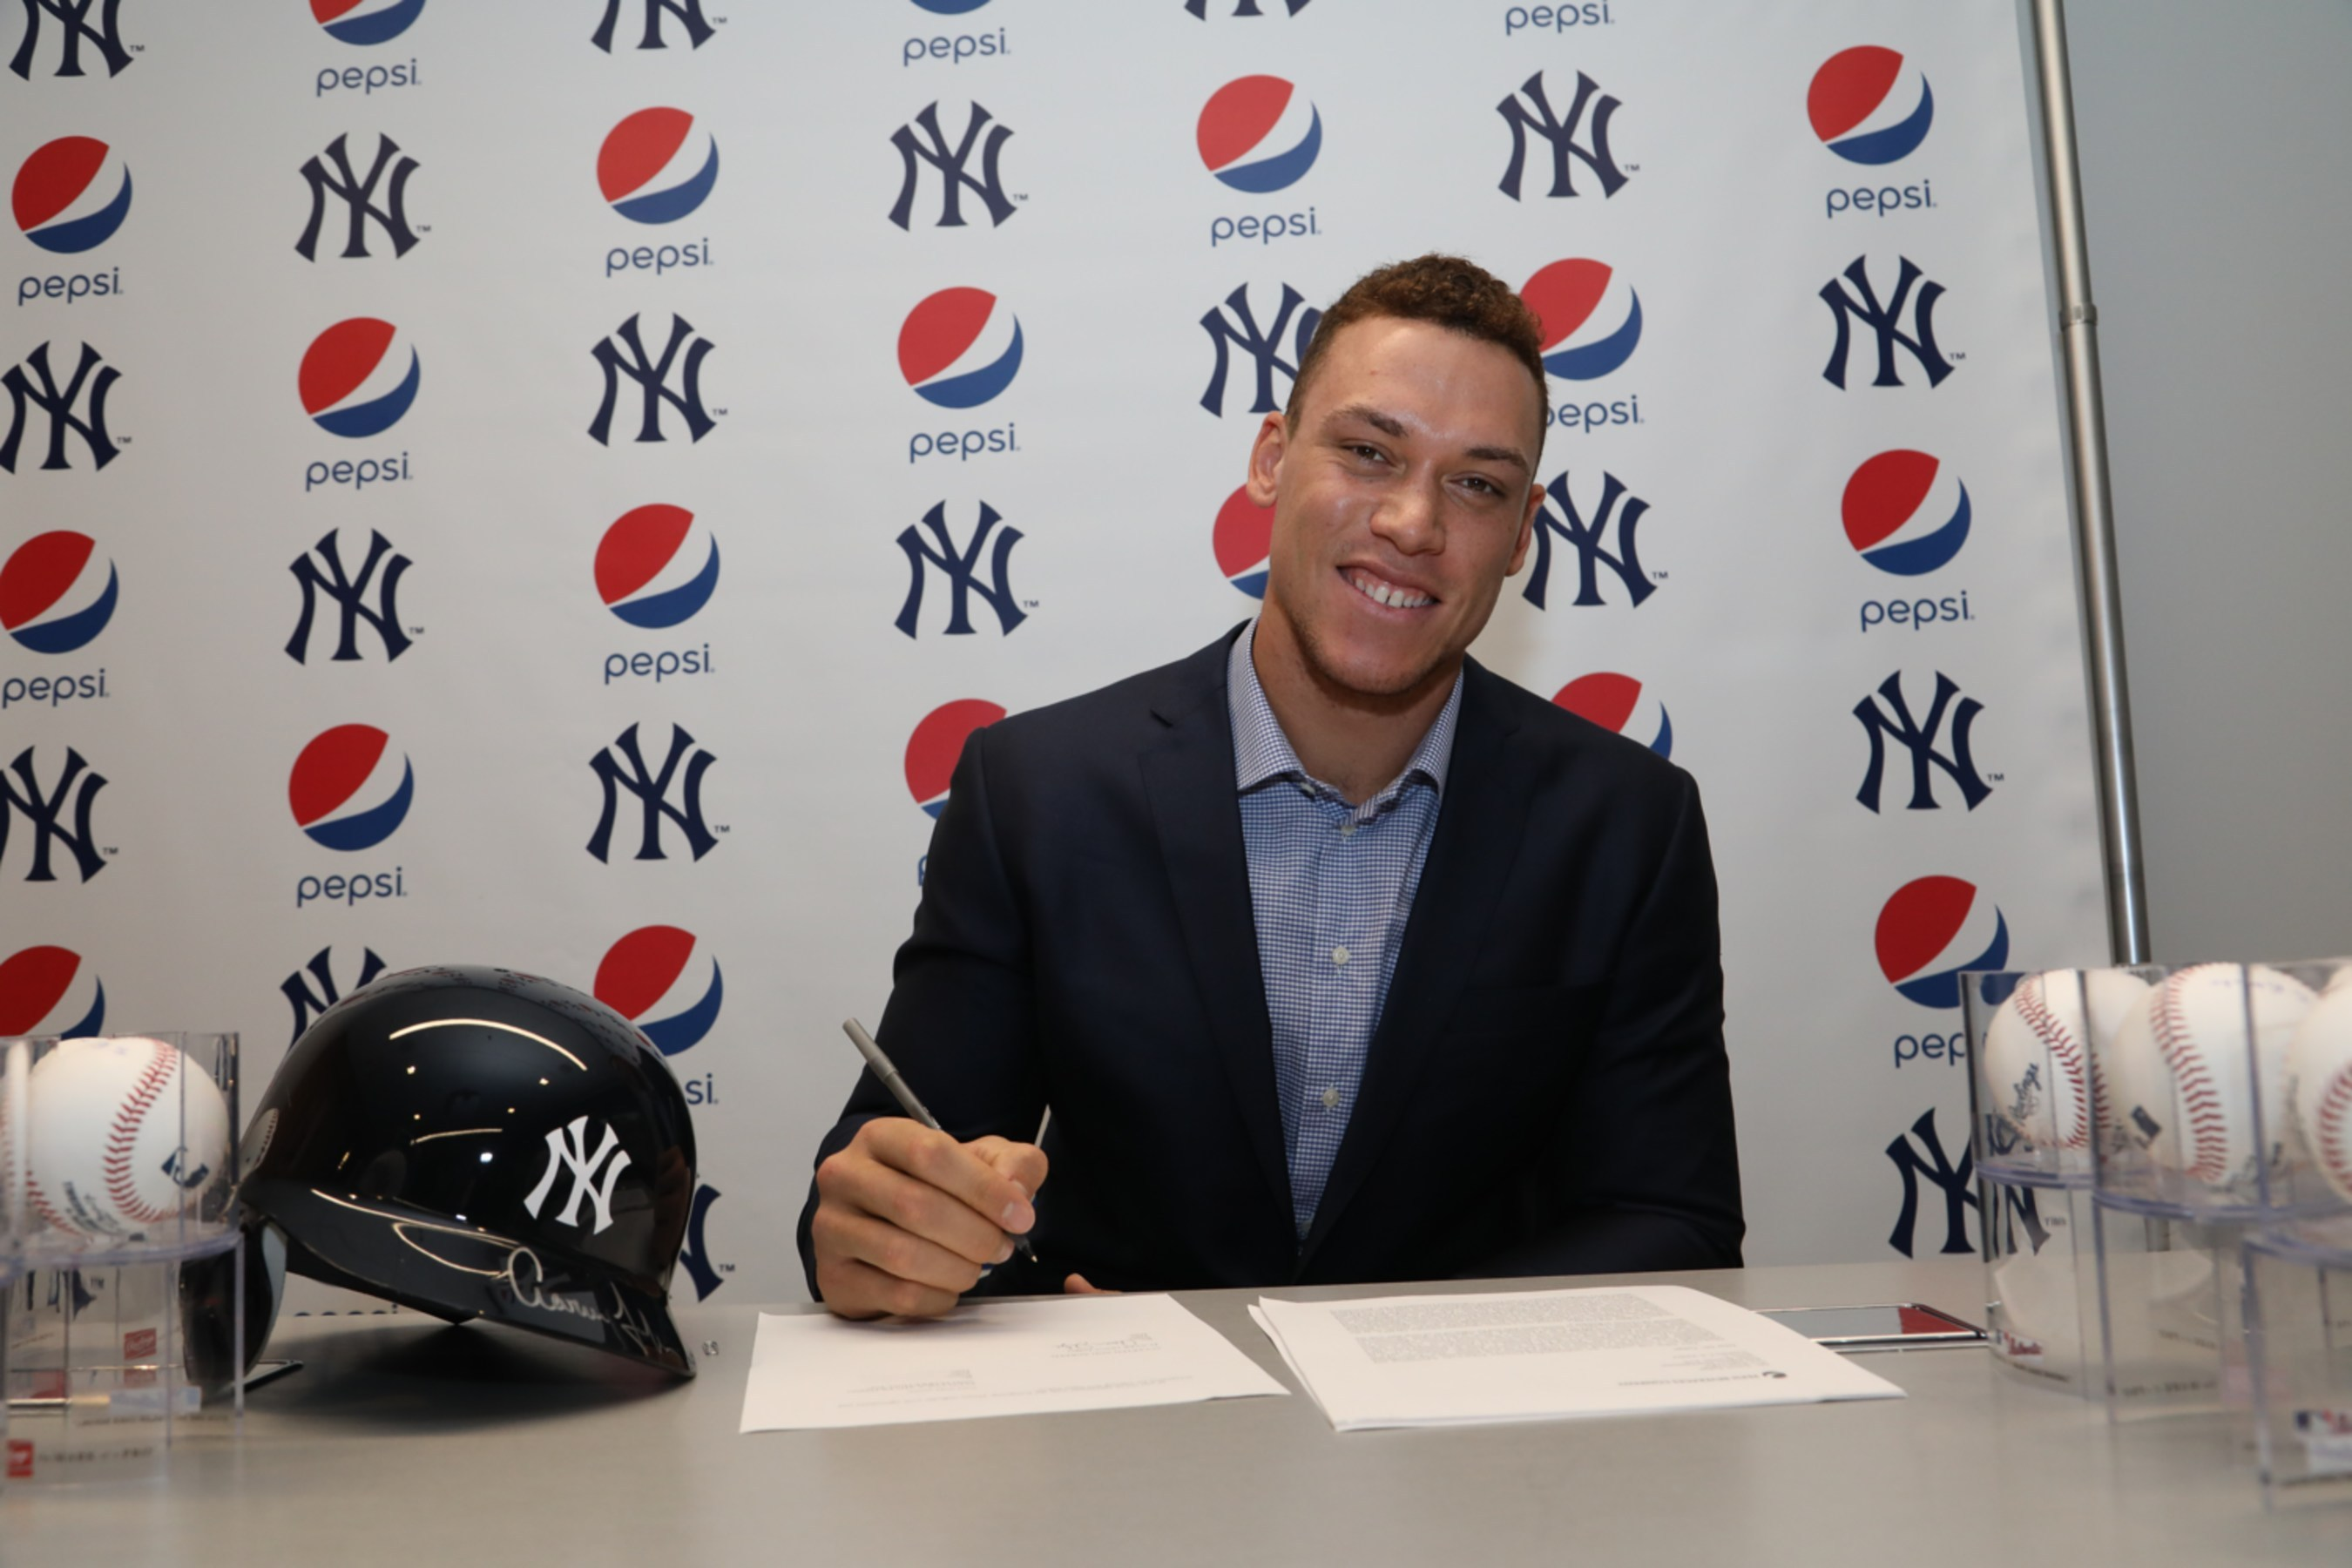 aaron judge, pepsi